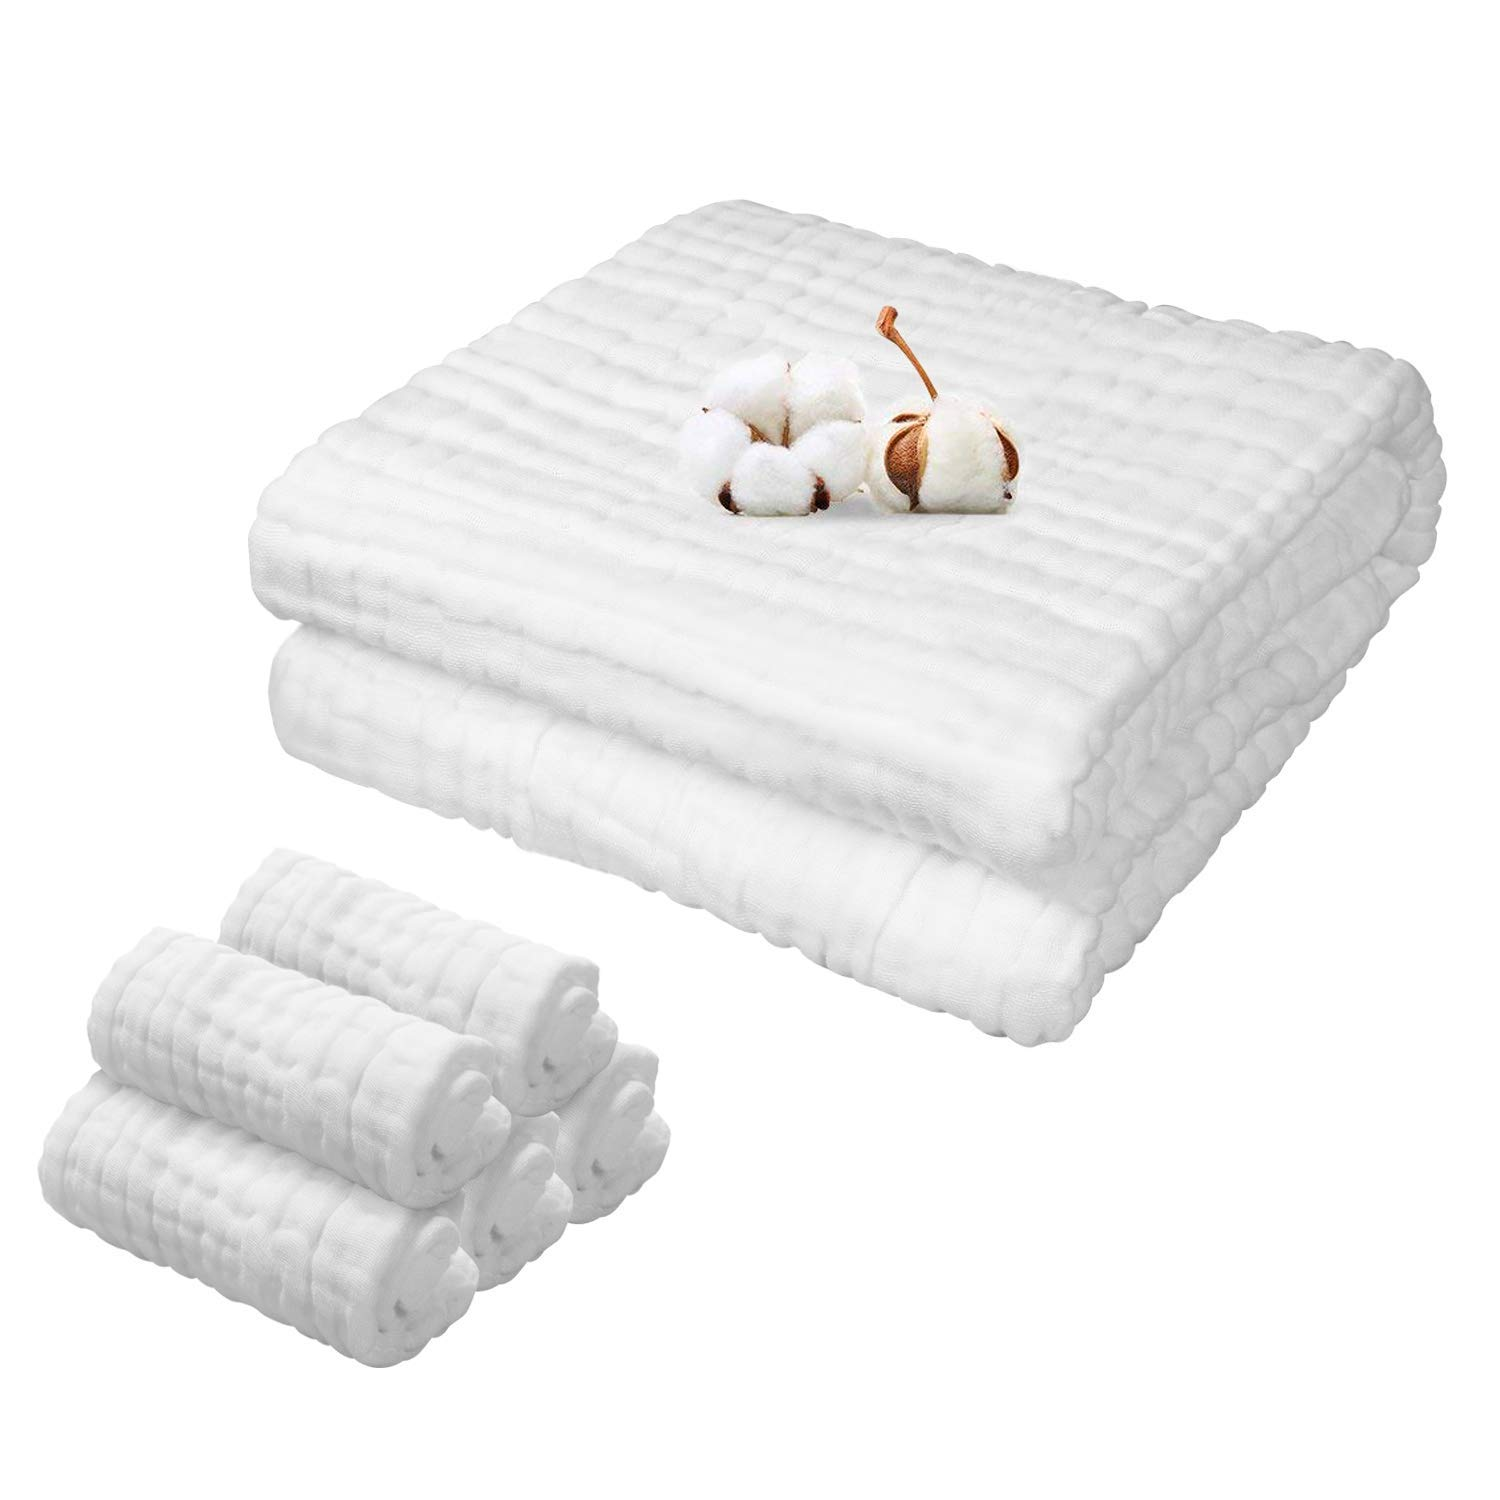 Baby Towels Muslin Washcloths Set - 1 Large Bath Towel & 5 Washcloths, 6 Layers 100% Cotton, Super Absorbent and Soft, Suitable for Baby's Skin (White+ 5 White) by hipibbo